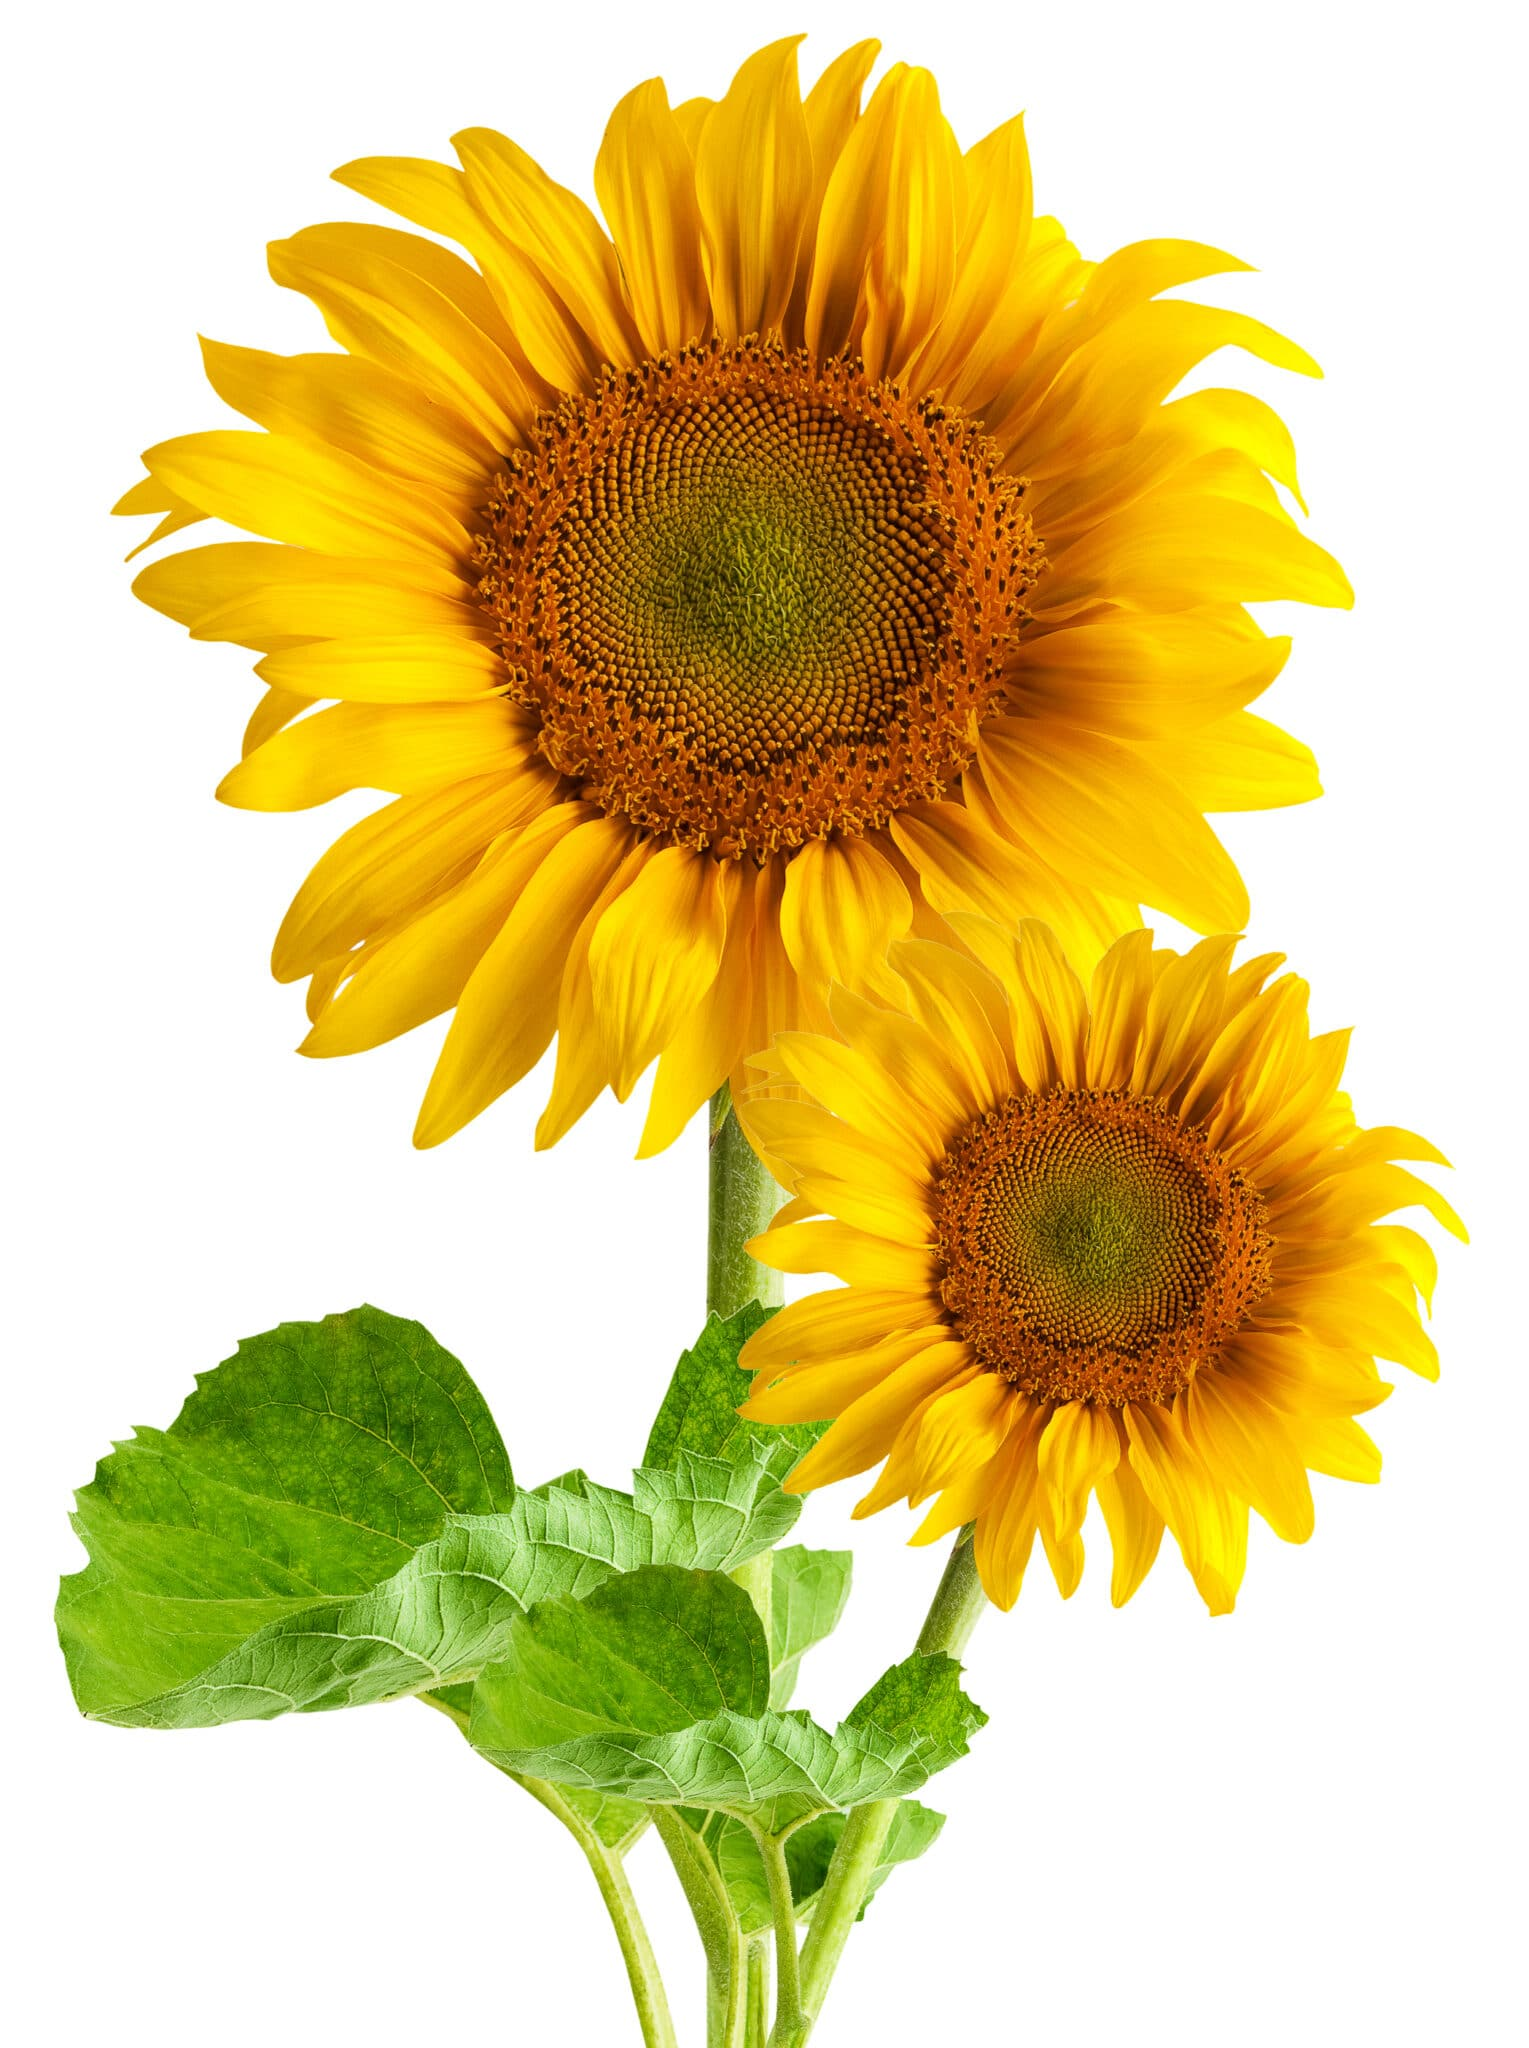 Two sunflowers blooming against a white background.